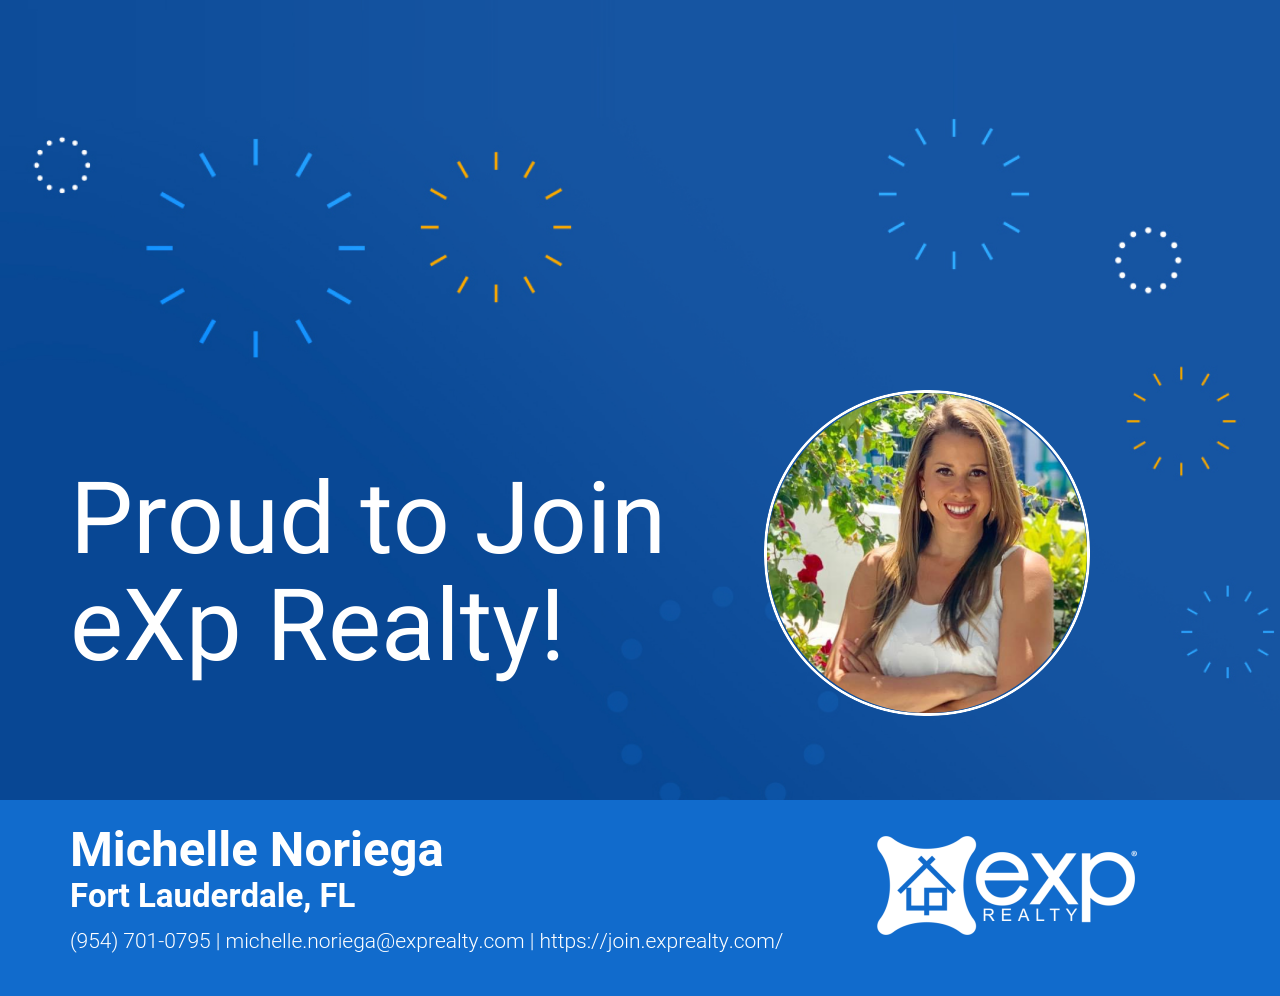 Welcome to eXp Realty Michelle Noriega!